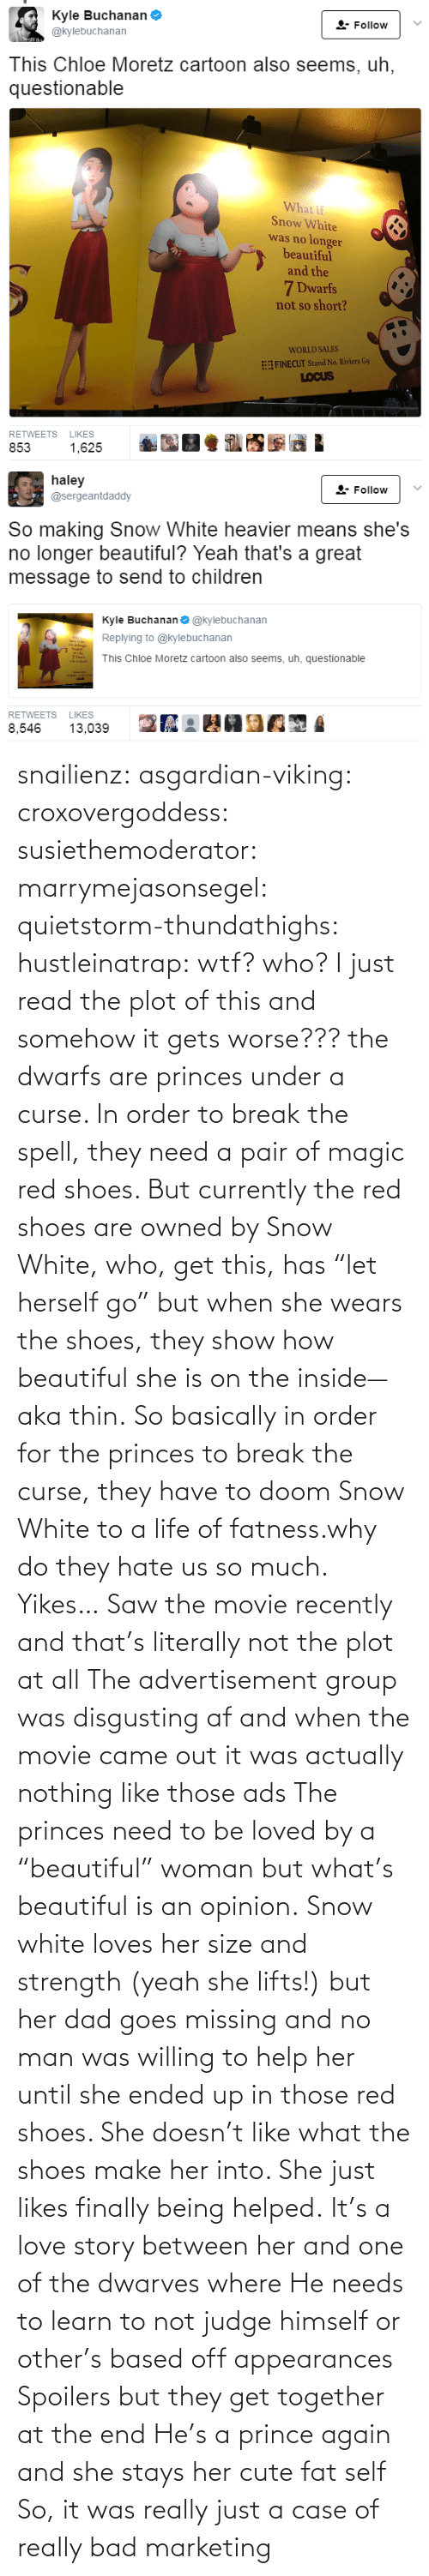 "Lifts: snailienz: asgardian-viking:  croxovergoddess:  susiethemoderator:  marrymejasonsegel:   quietstorm-thundathighs:  hustleinatrap: wtf?  who?   I just read the plot of this and somehow it gets worse??? the dwarfs are princes under a curse. In order to break the spell, they need a pair of magic red shoes. But currently the red shoes are owned by Snow White, who, get this, has ""let herself go"" but when she wears the shoes, they show how beautiful she is on the inside—aka thin. So basically in order for the princes to break the curse, they have to doom Snow White to a life of fatness.why do they hate us so much.   Yikes…    Saw the movie recently and that's literally not the plot at all The advertisement group was disgusting af and when the movie came out it was actually nothing like those ads The princes need to be loved by a ""beautiful"" woman but what's beautiful is an opinion. Snow white loves her size and strength (yeah she lifts!) but her dad goes missing and no man was willing to help her until she ended up in those red shoes. She doesn't like what the shoes make her into. She just likes finally being helped. It's a love story between her and one of the dwarves where He needs to learn to not judge himself or other's based off appearances  Spoilers but they get together at the end He's a prince again and she stays her cute fat self  So, it was really just a case of really bad marketing"